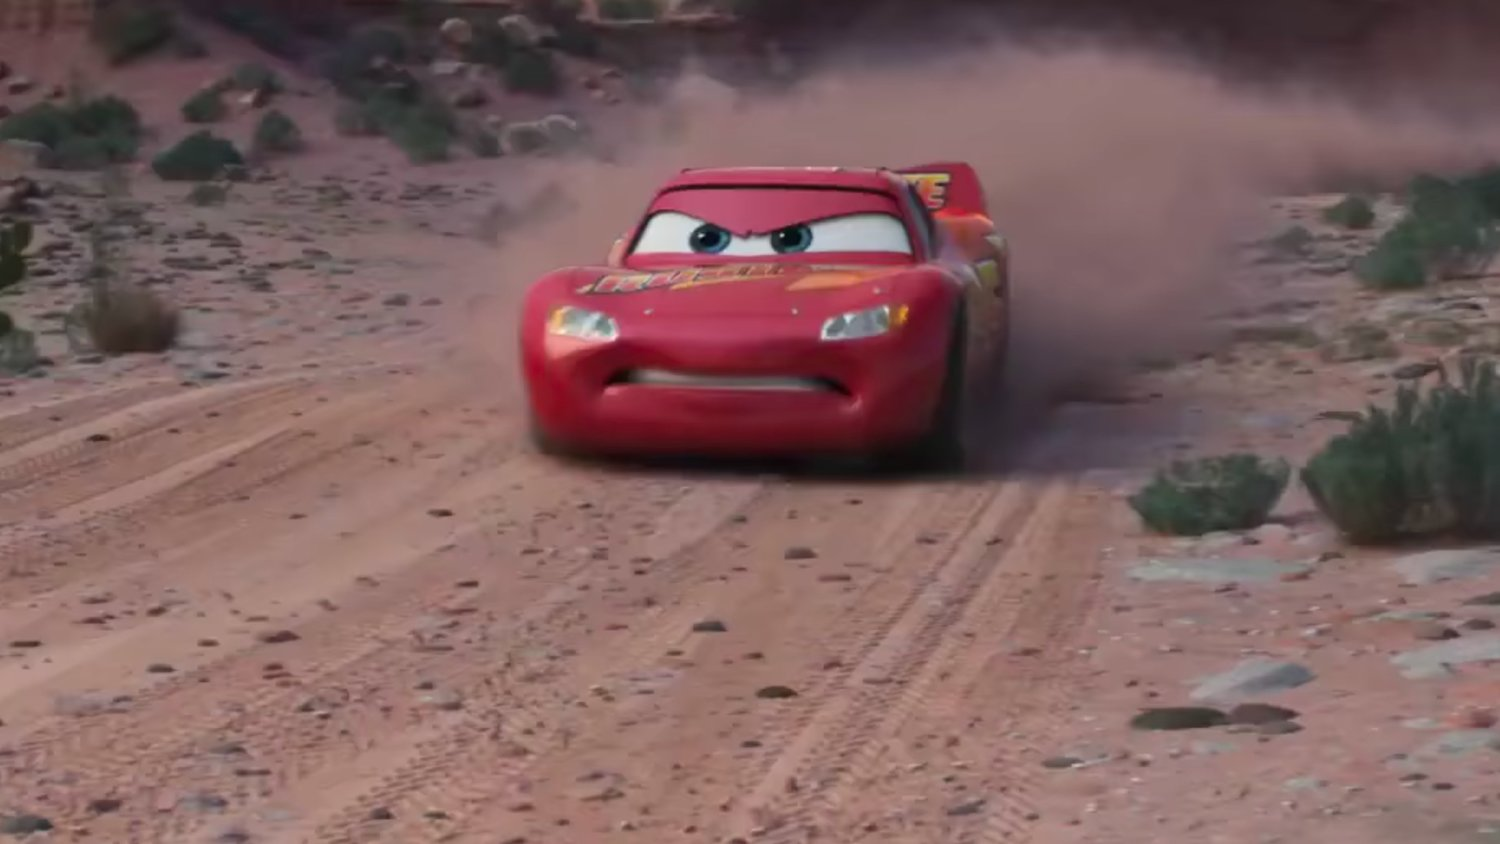 Lightning McQueen Faces His Greatest Challenge Yet in New CARS 3 Trailer